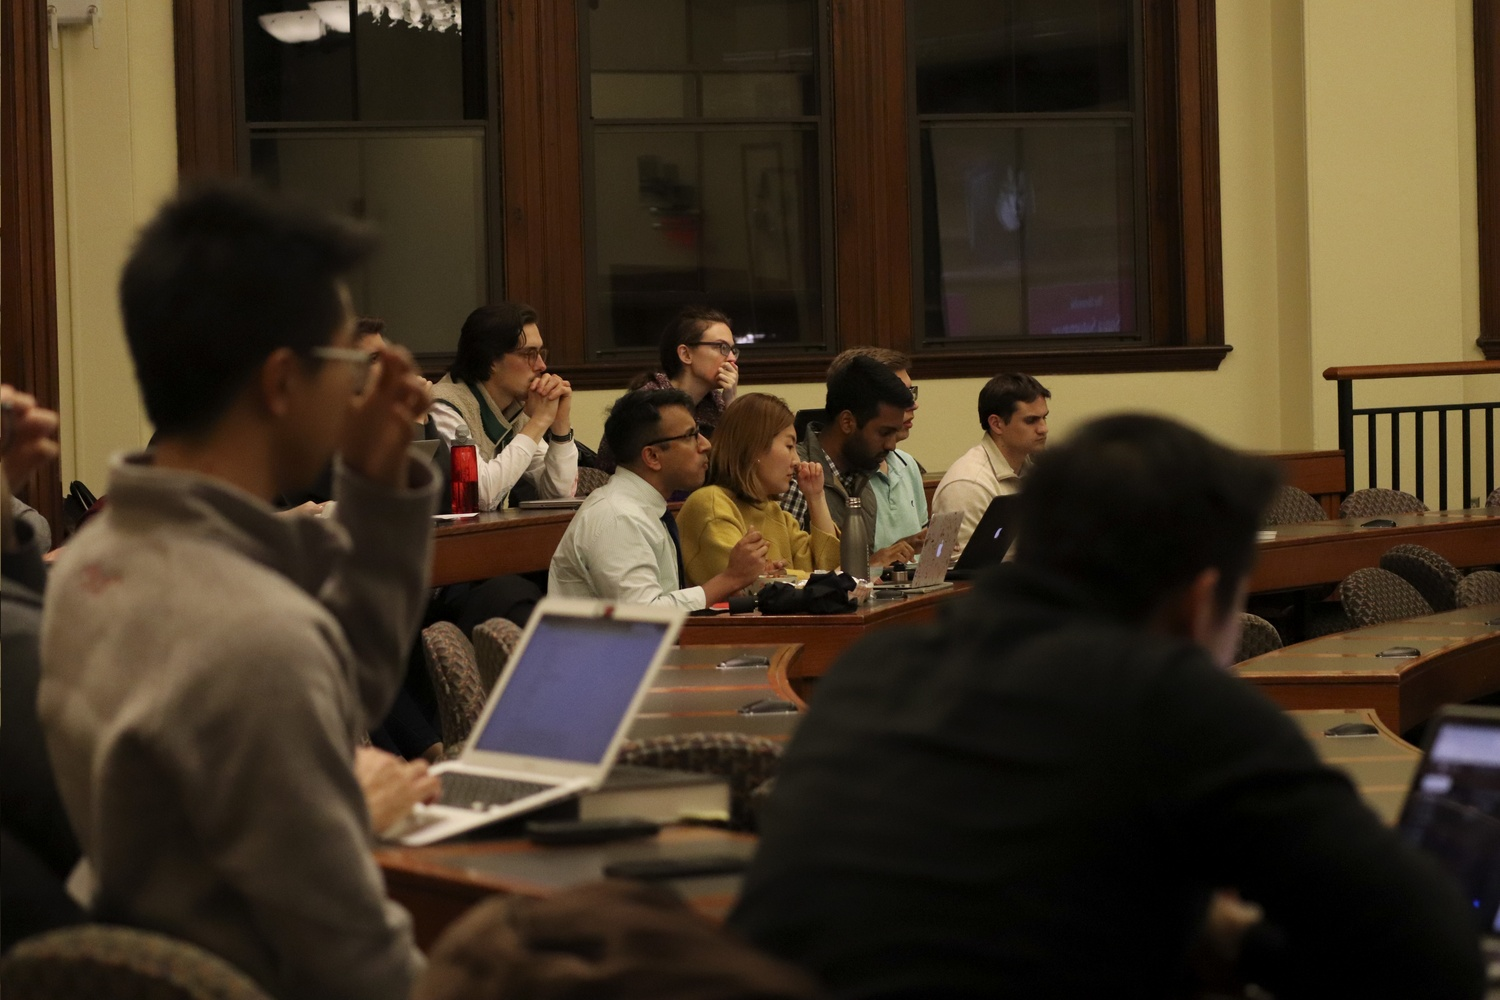 People gather in classrooms on the first floor of Austin Hall Tuesday night to watch a live stream of the final round of the Ames Competition, which was taking place a floor above.